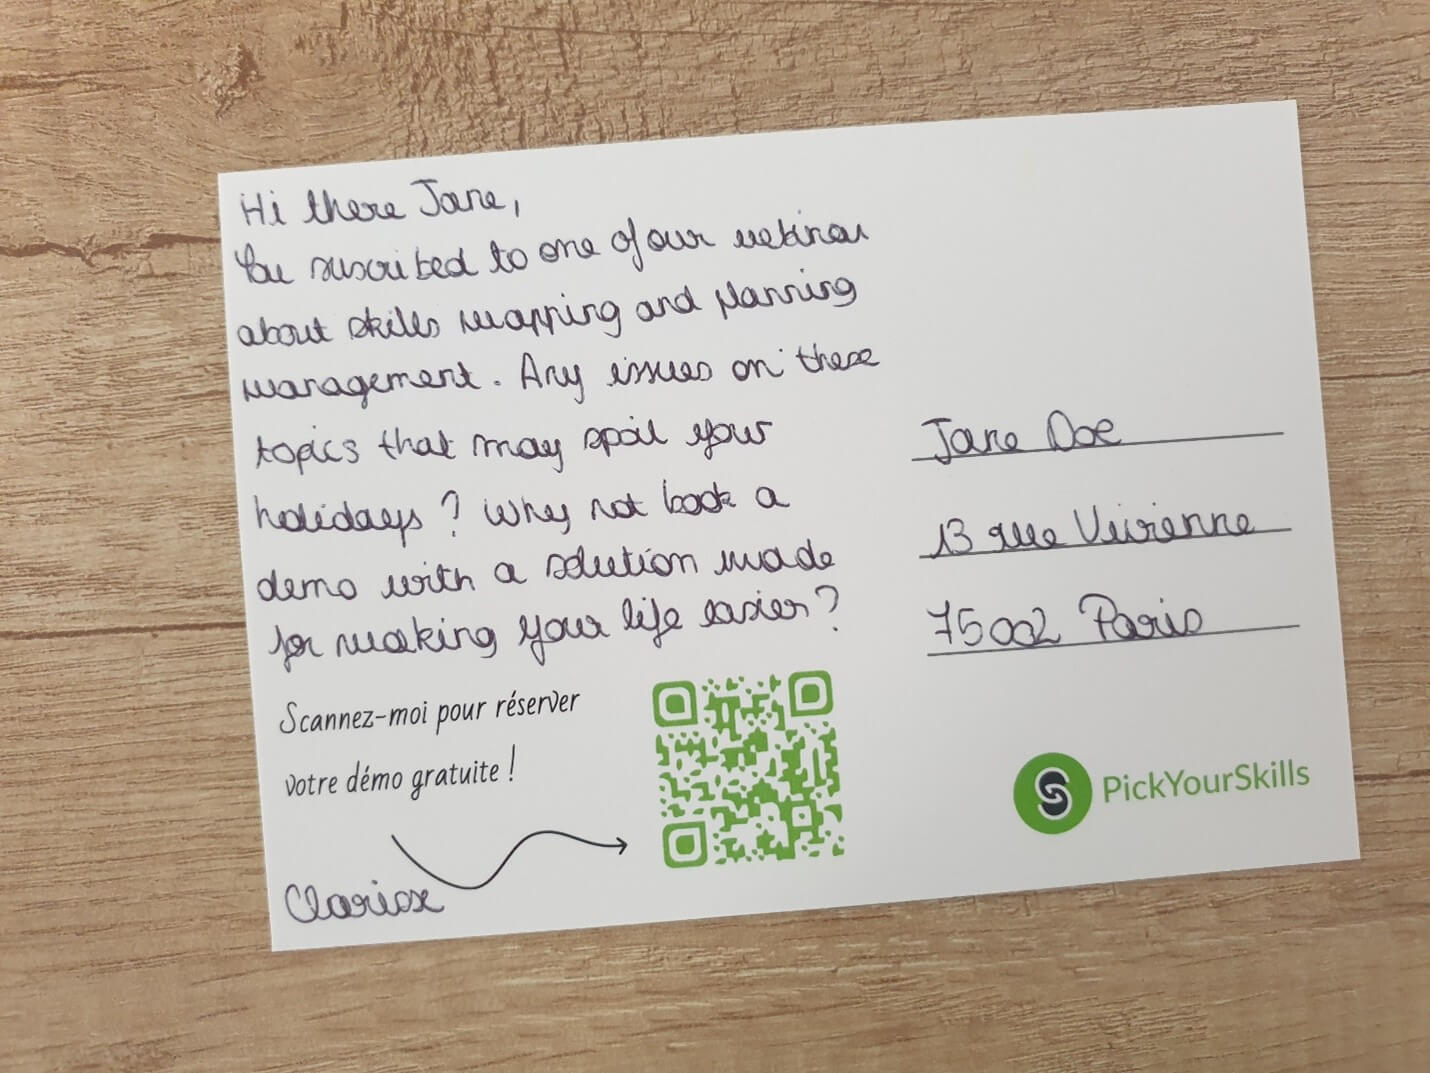 Creative Sample #2: Handwritten note on postcard to cold leads from resource management software company